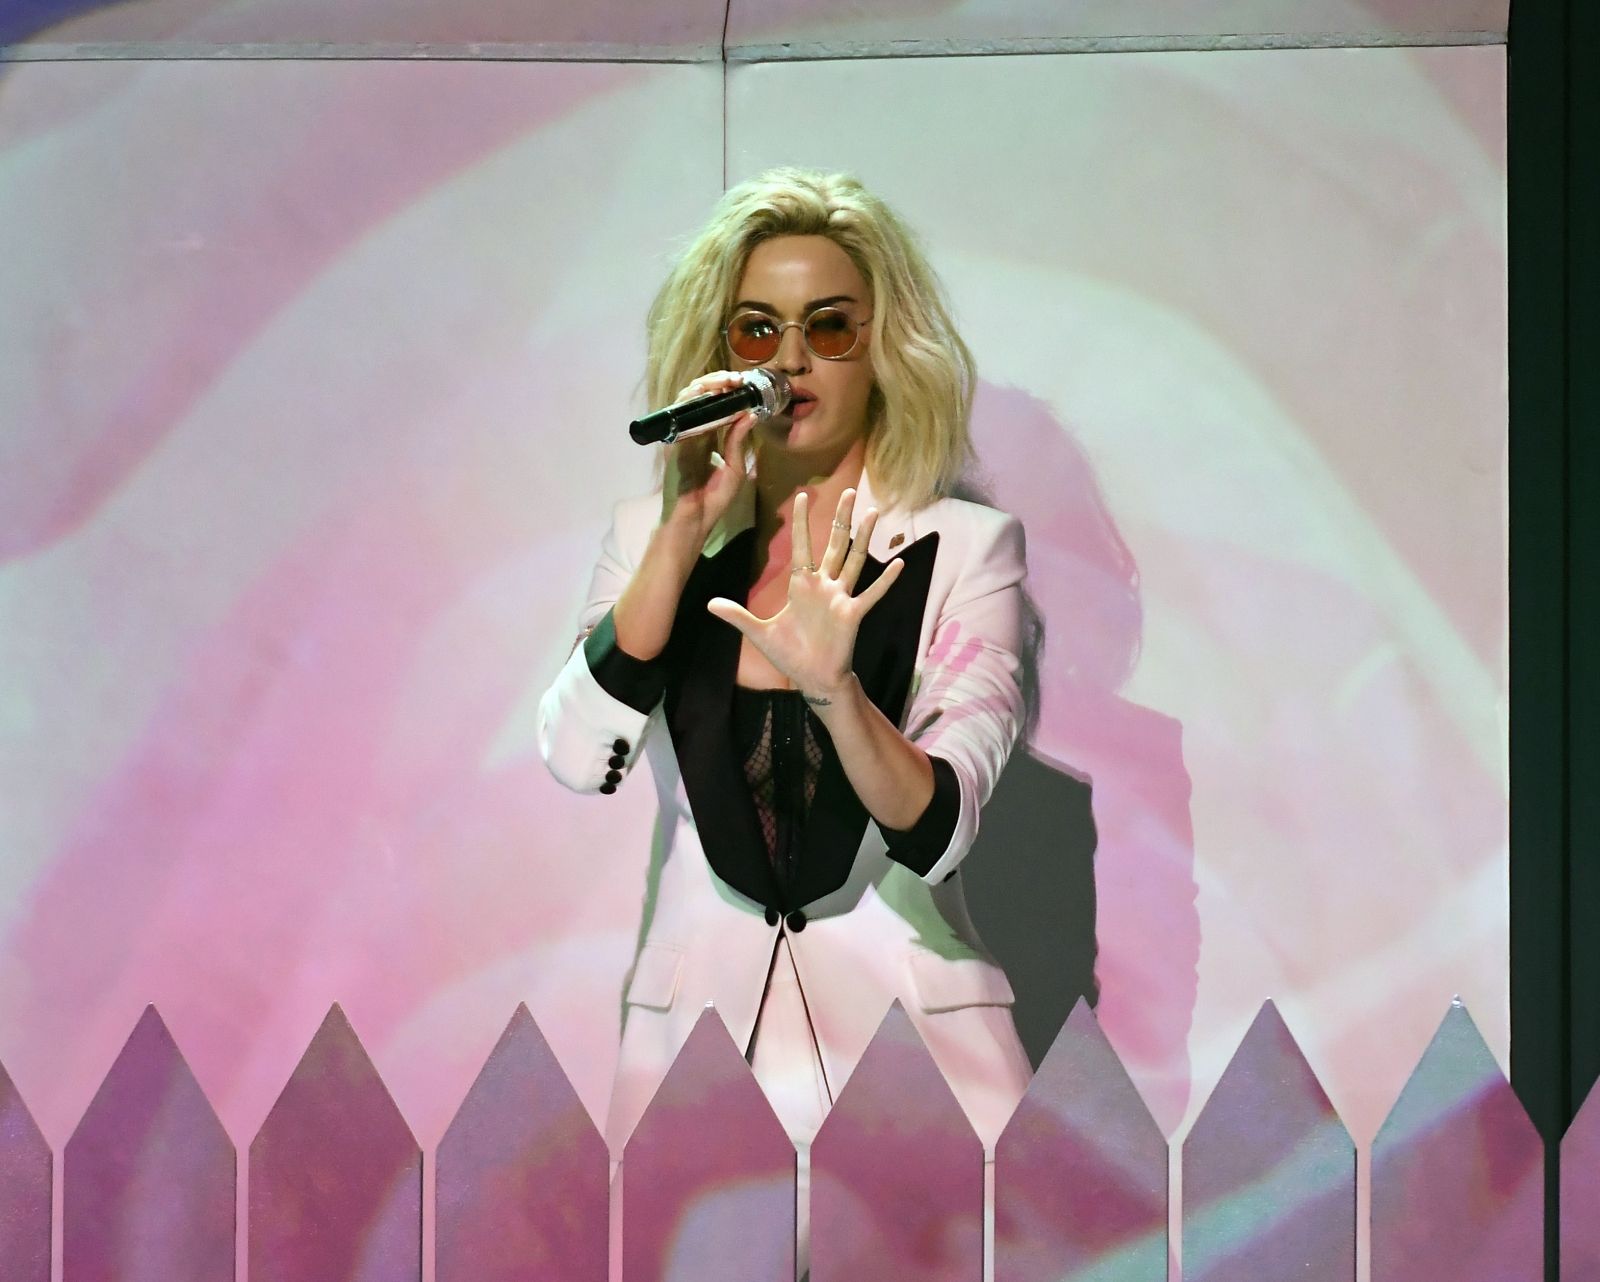 Katy Perry at the Grammys